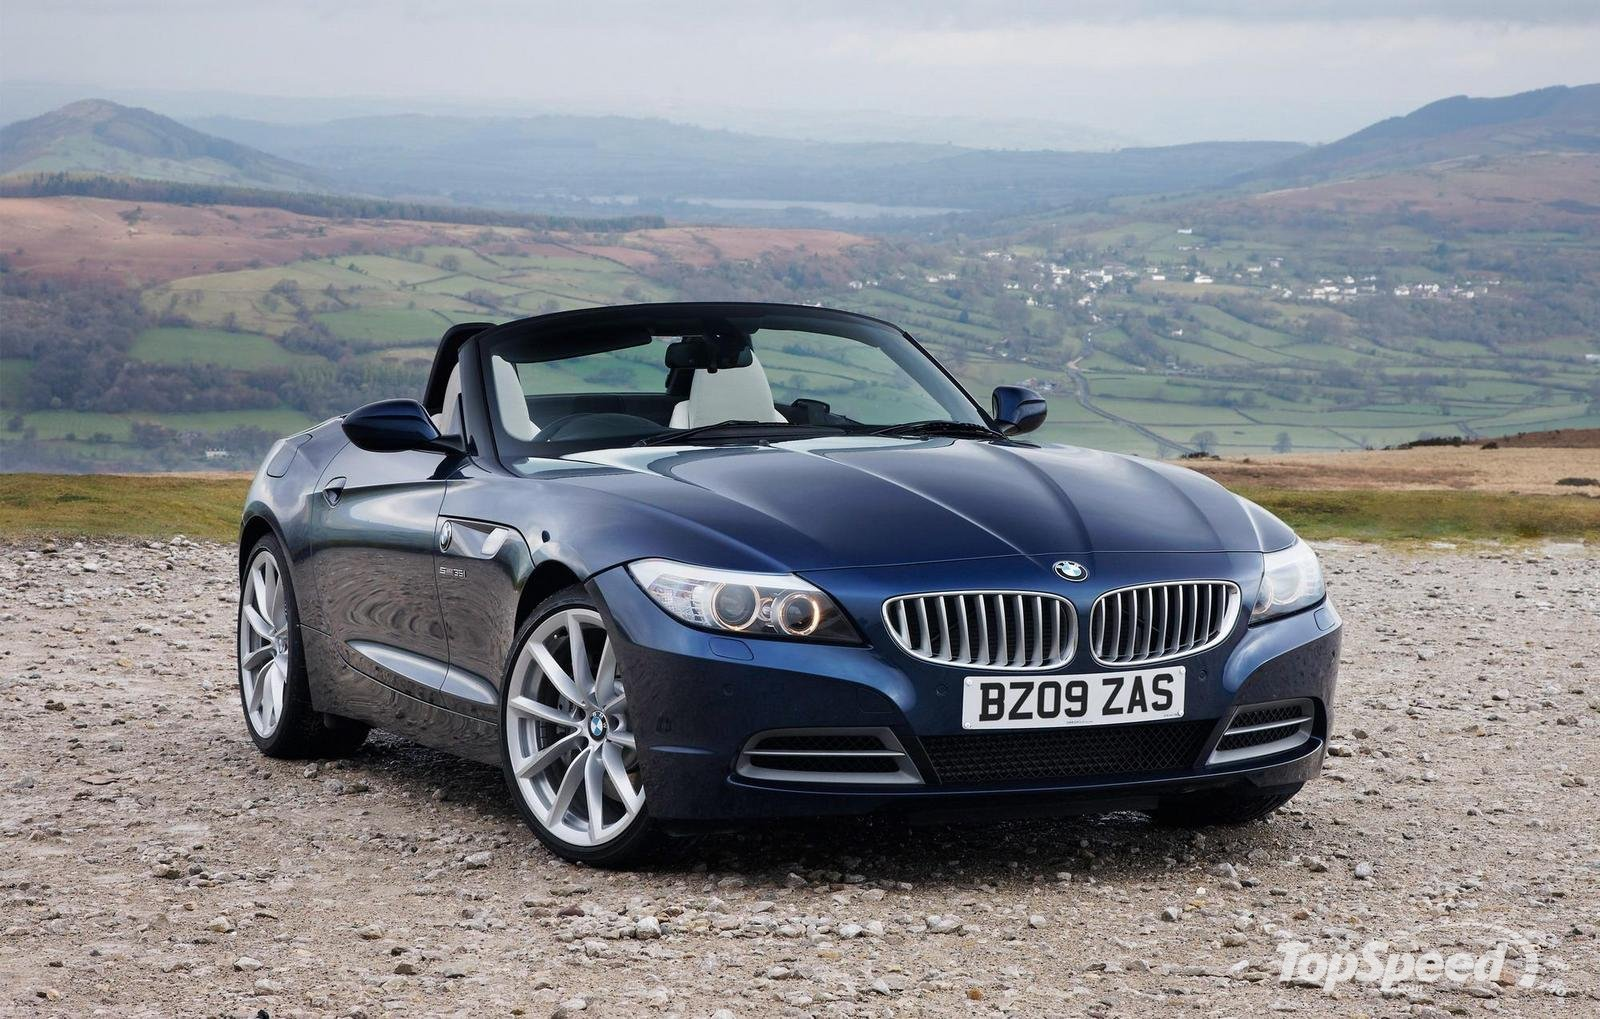 2009 Bmw Z4 Roadster Bmw Cars